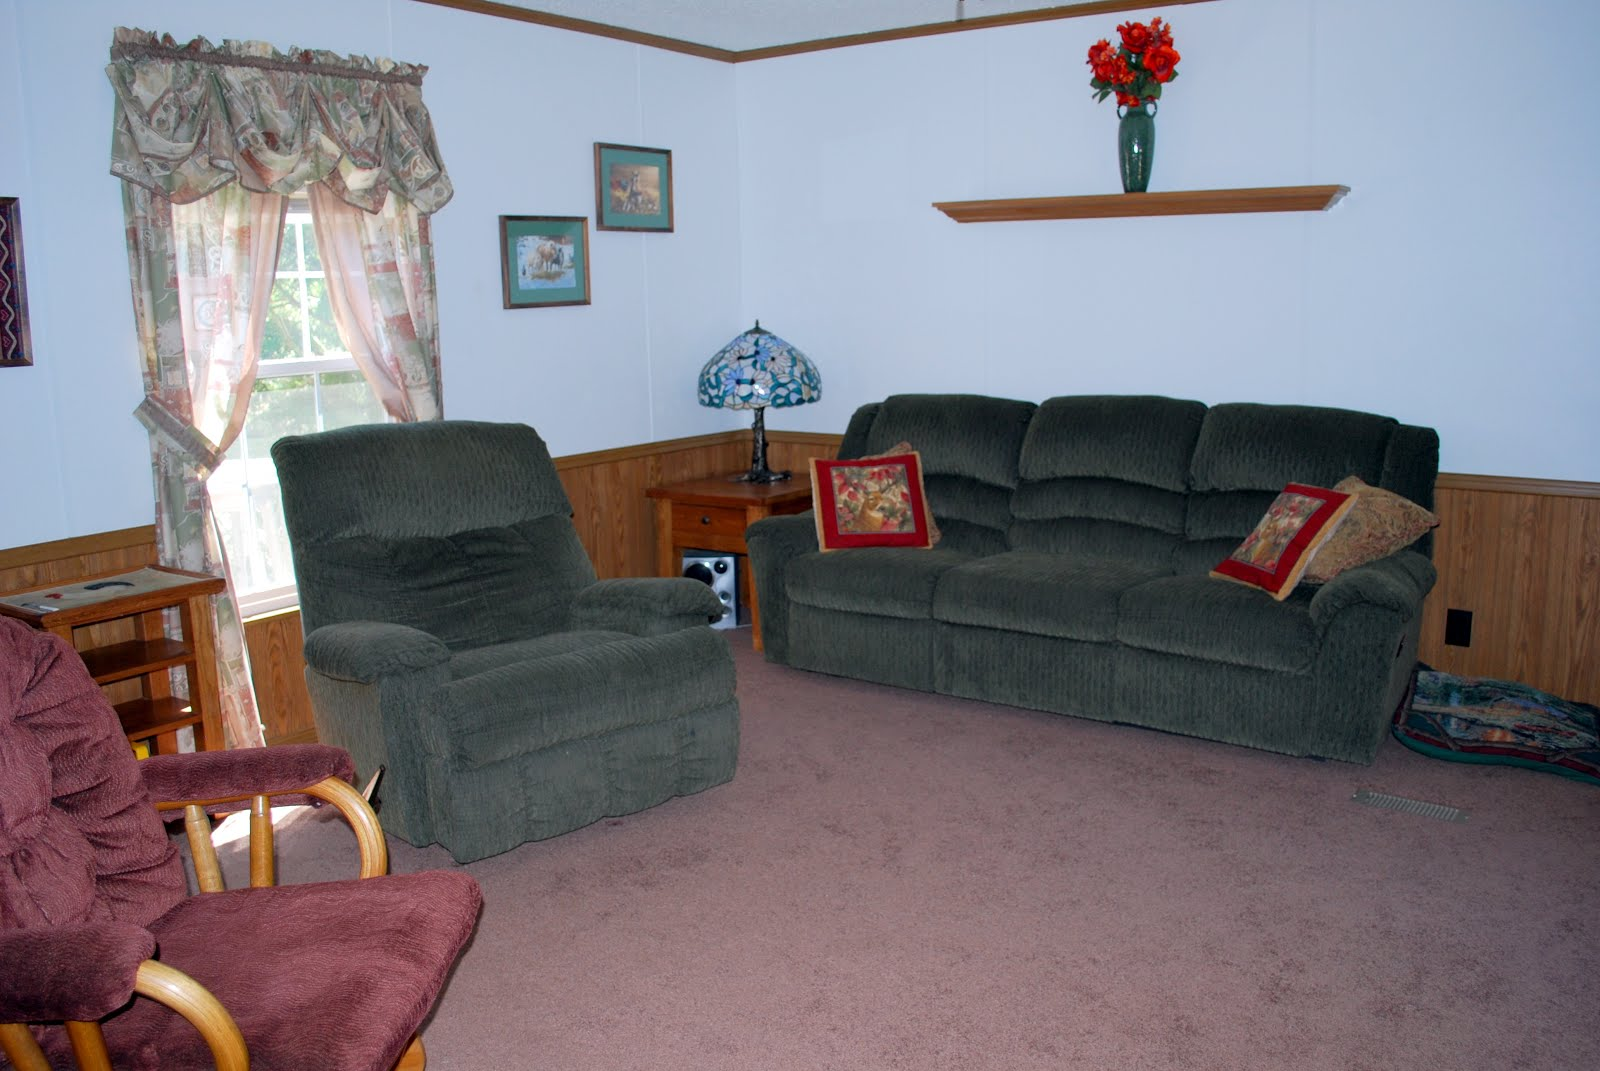 Cottage has living room, Kitchen, 2 bedrooms and large bath.